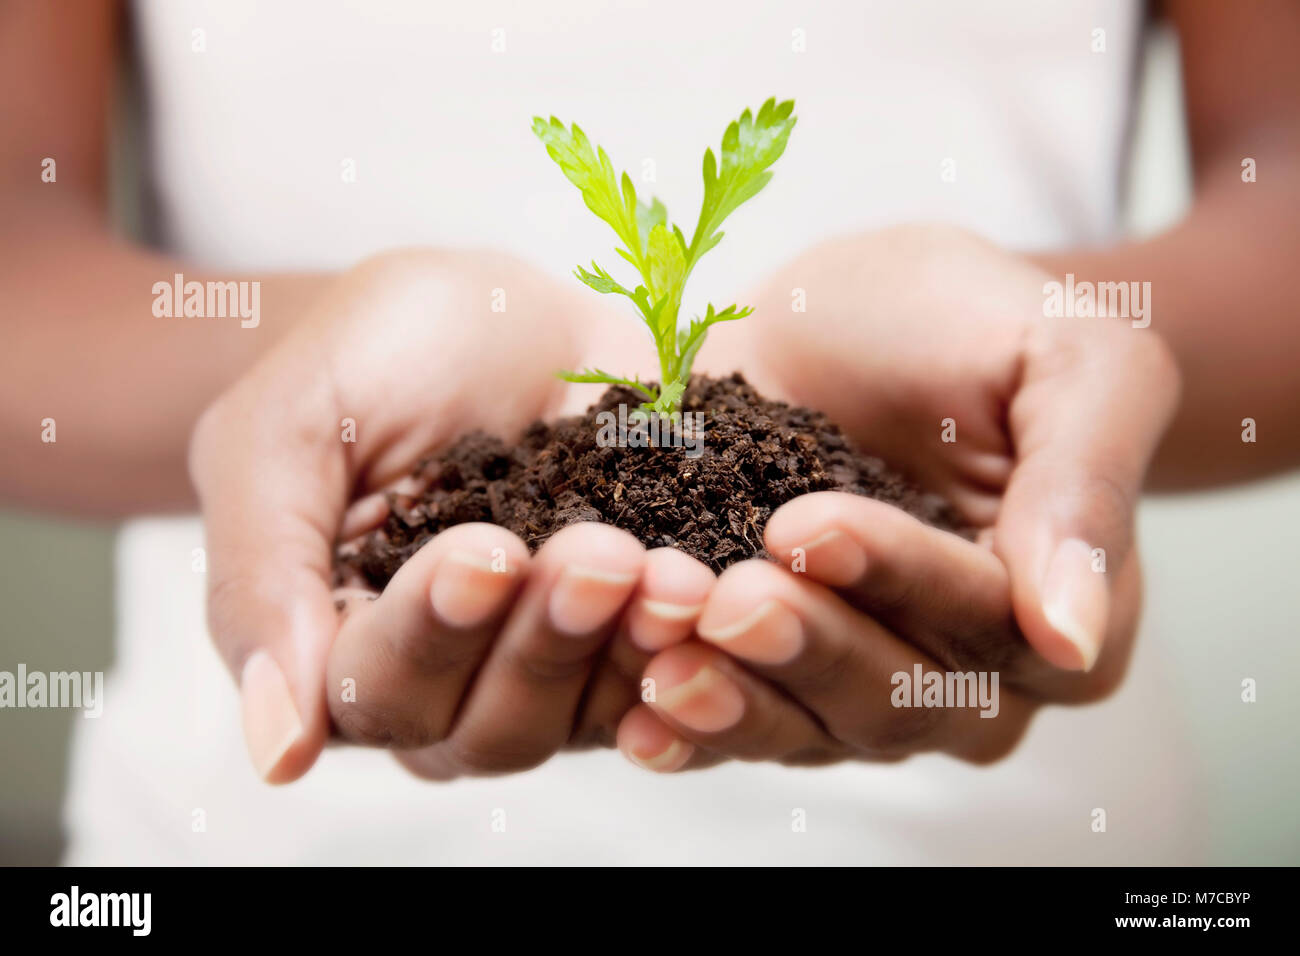 Close-up of a woman's hands holding a seedling - Stock Image